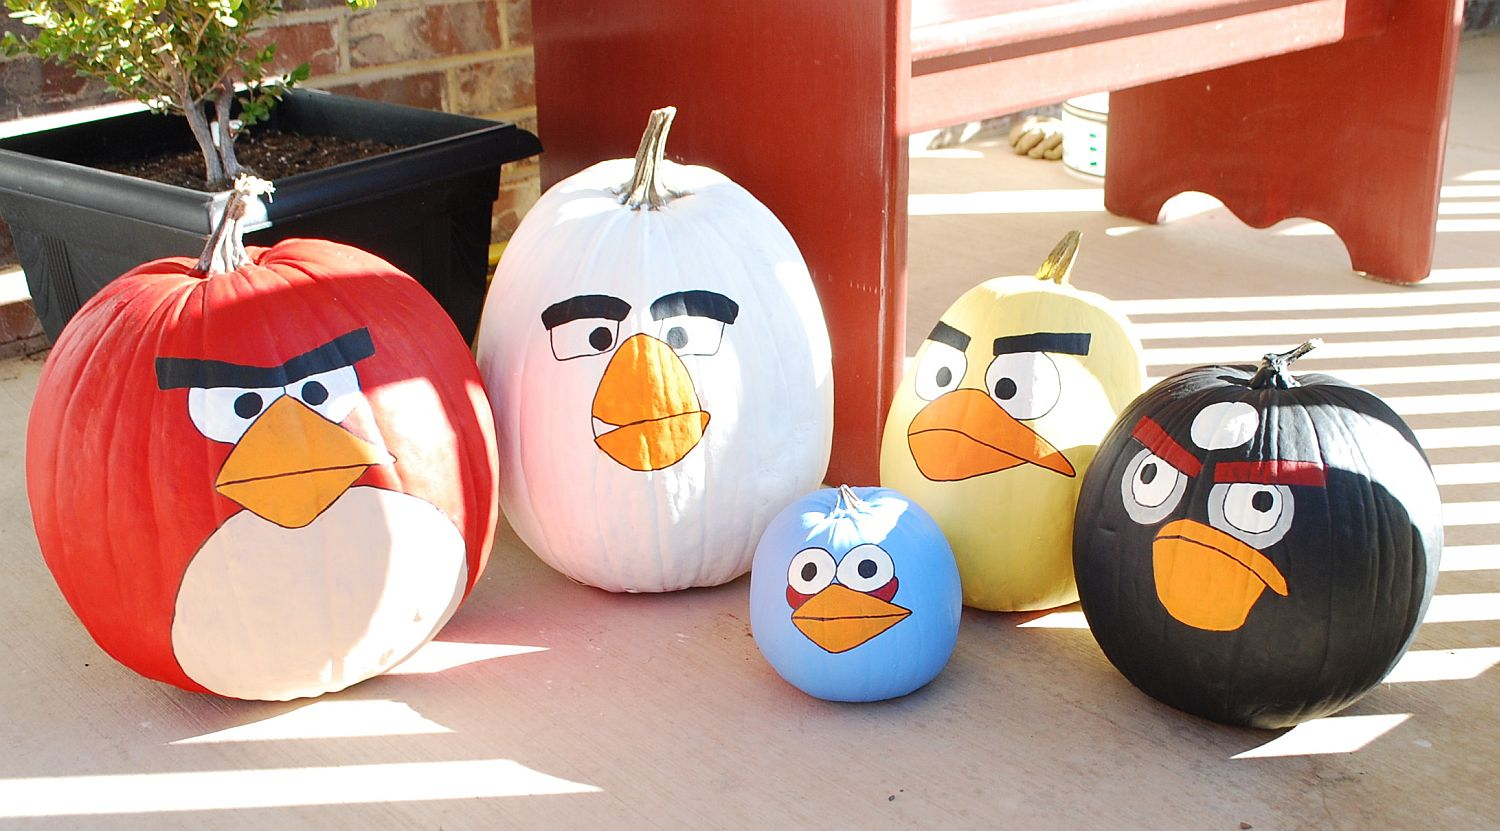 Fabulous Angry Birds pumpkins for a colorful and super fun Halloween [ From: creations by kara]